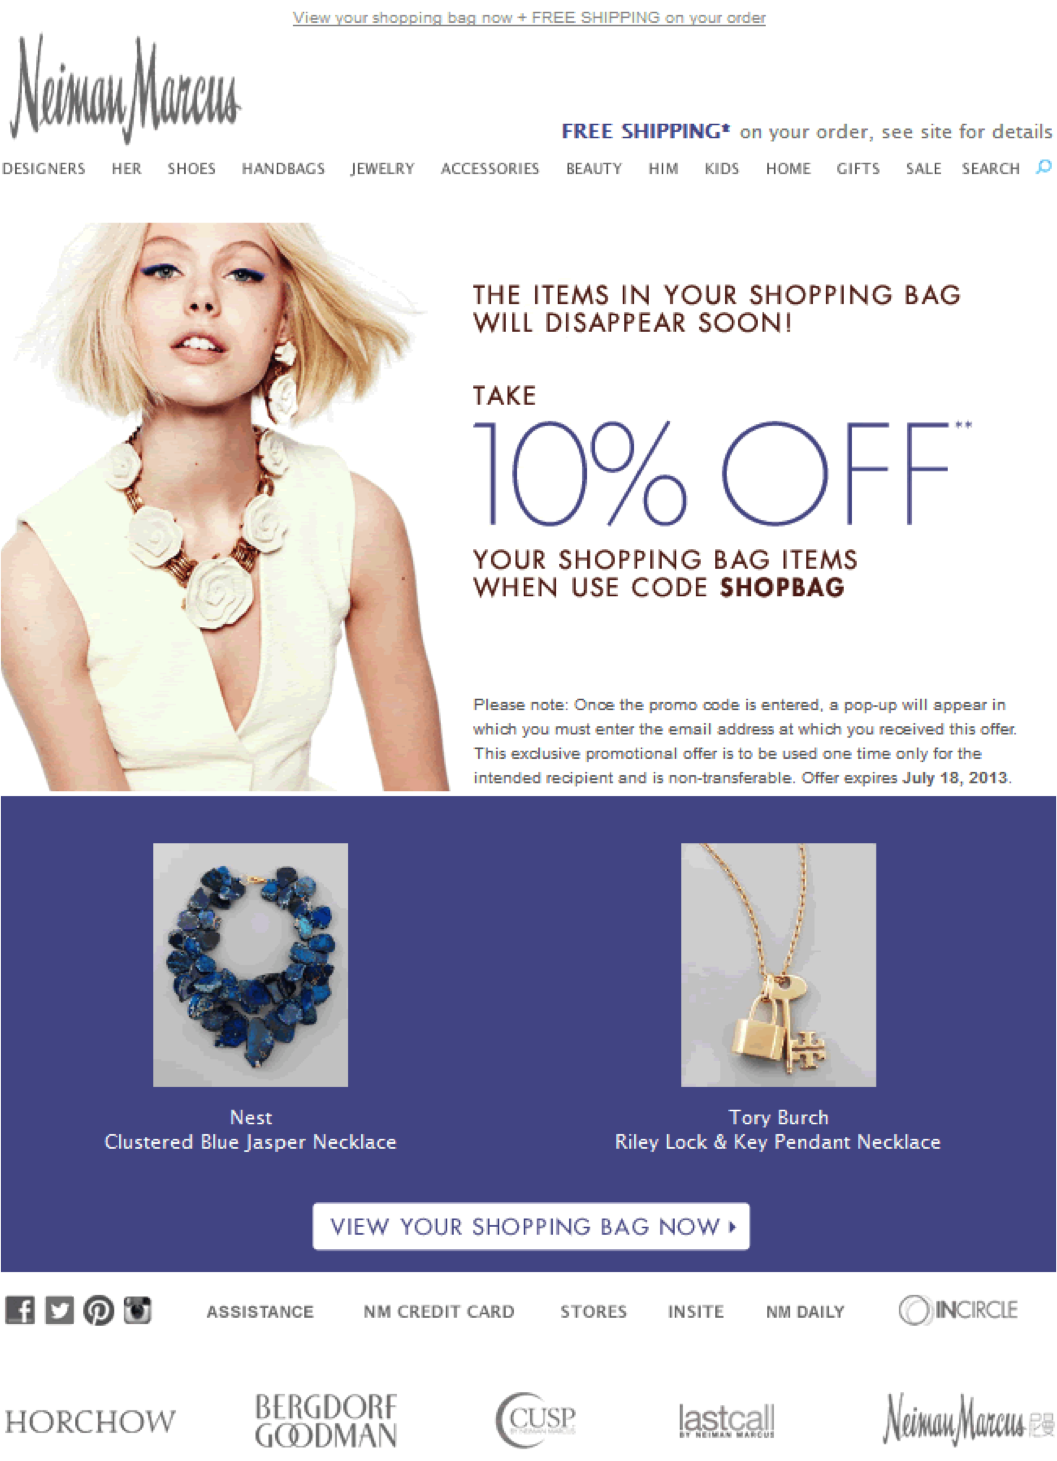 How Neiman Marcus uses coupons to address cart abandonment